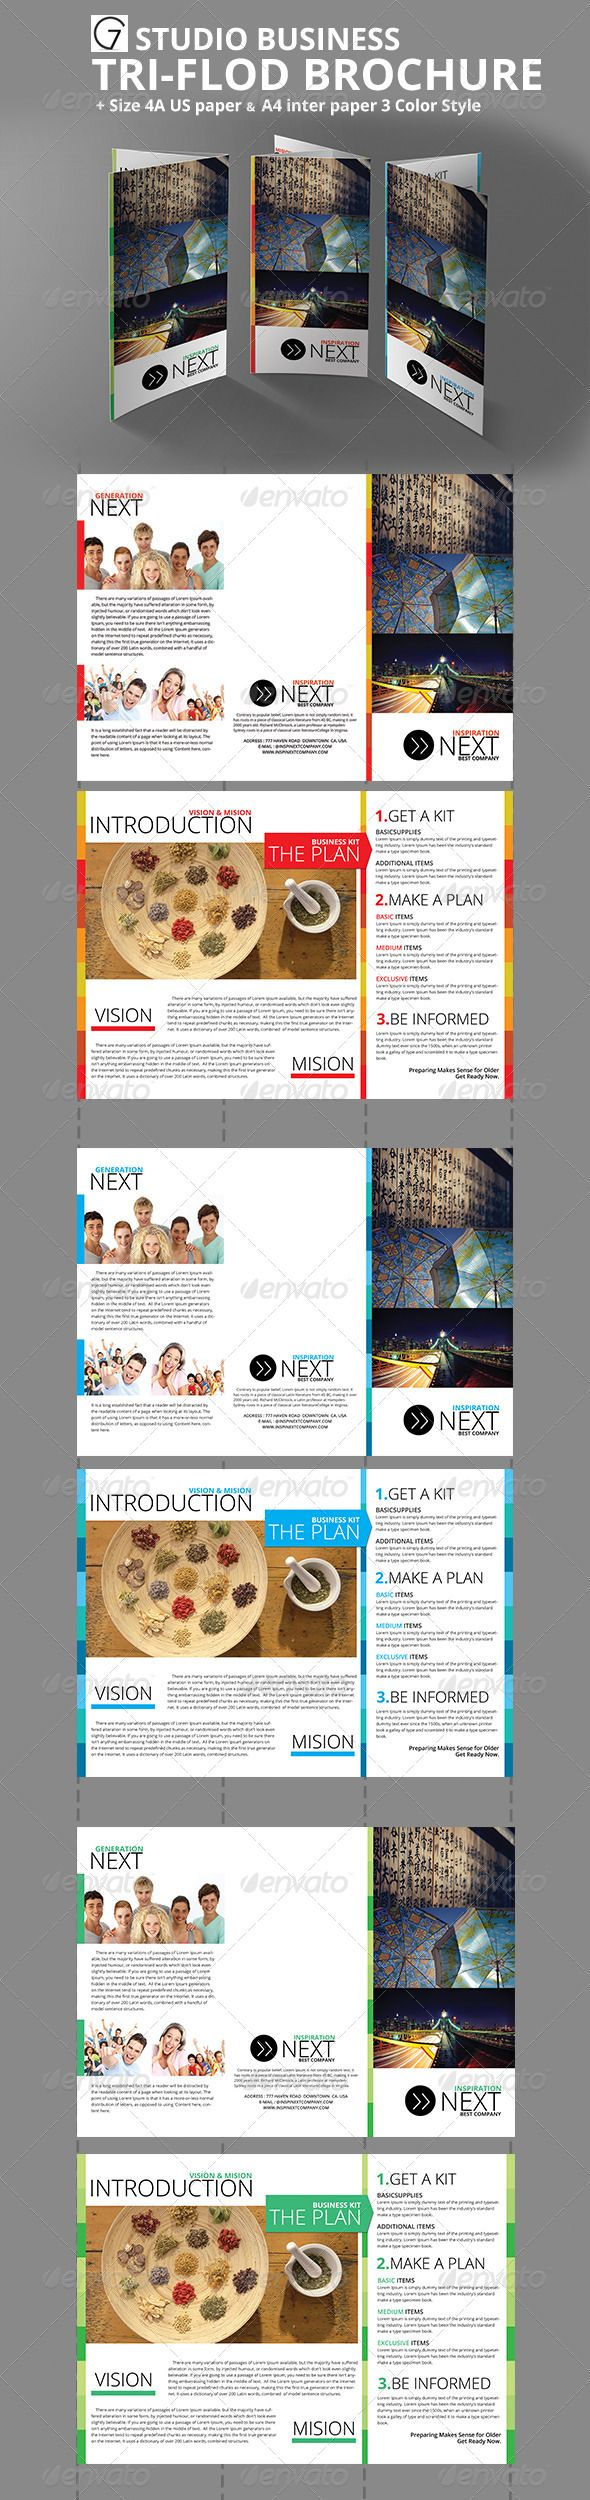 Unusual 1 Page Website Template Thin 10 Best Resume Writers Regular 100 Square Pool Template 1099 Employee Contract Template Youthful 2 Column Notes Template White2 Page Resume Format Doc 91 Best Images About Print Templates On Pinterest | Fonts, Flyer ..